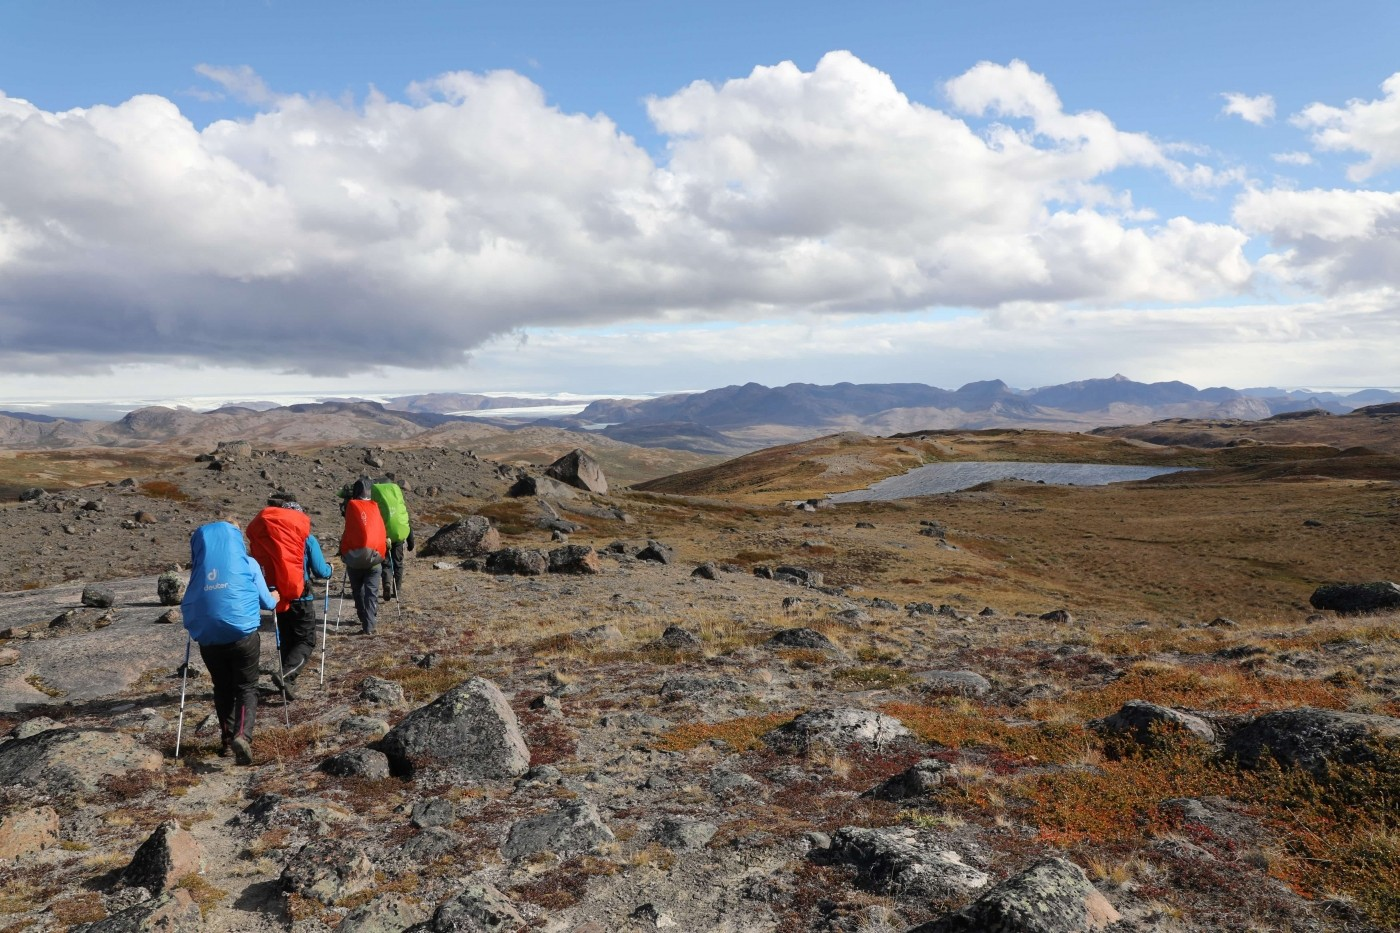 Hikers hiking in Aasivissuit UNESCO area close to Kangerlussuaq in summer. Photo by Morten Christensen